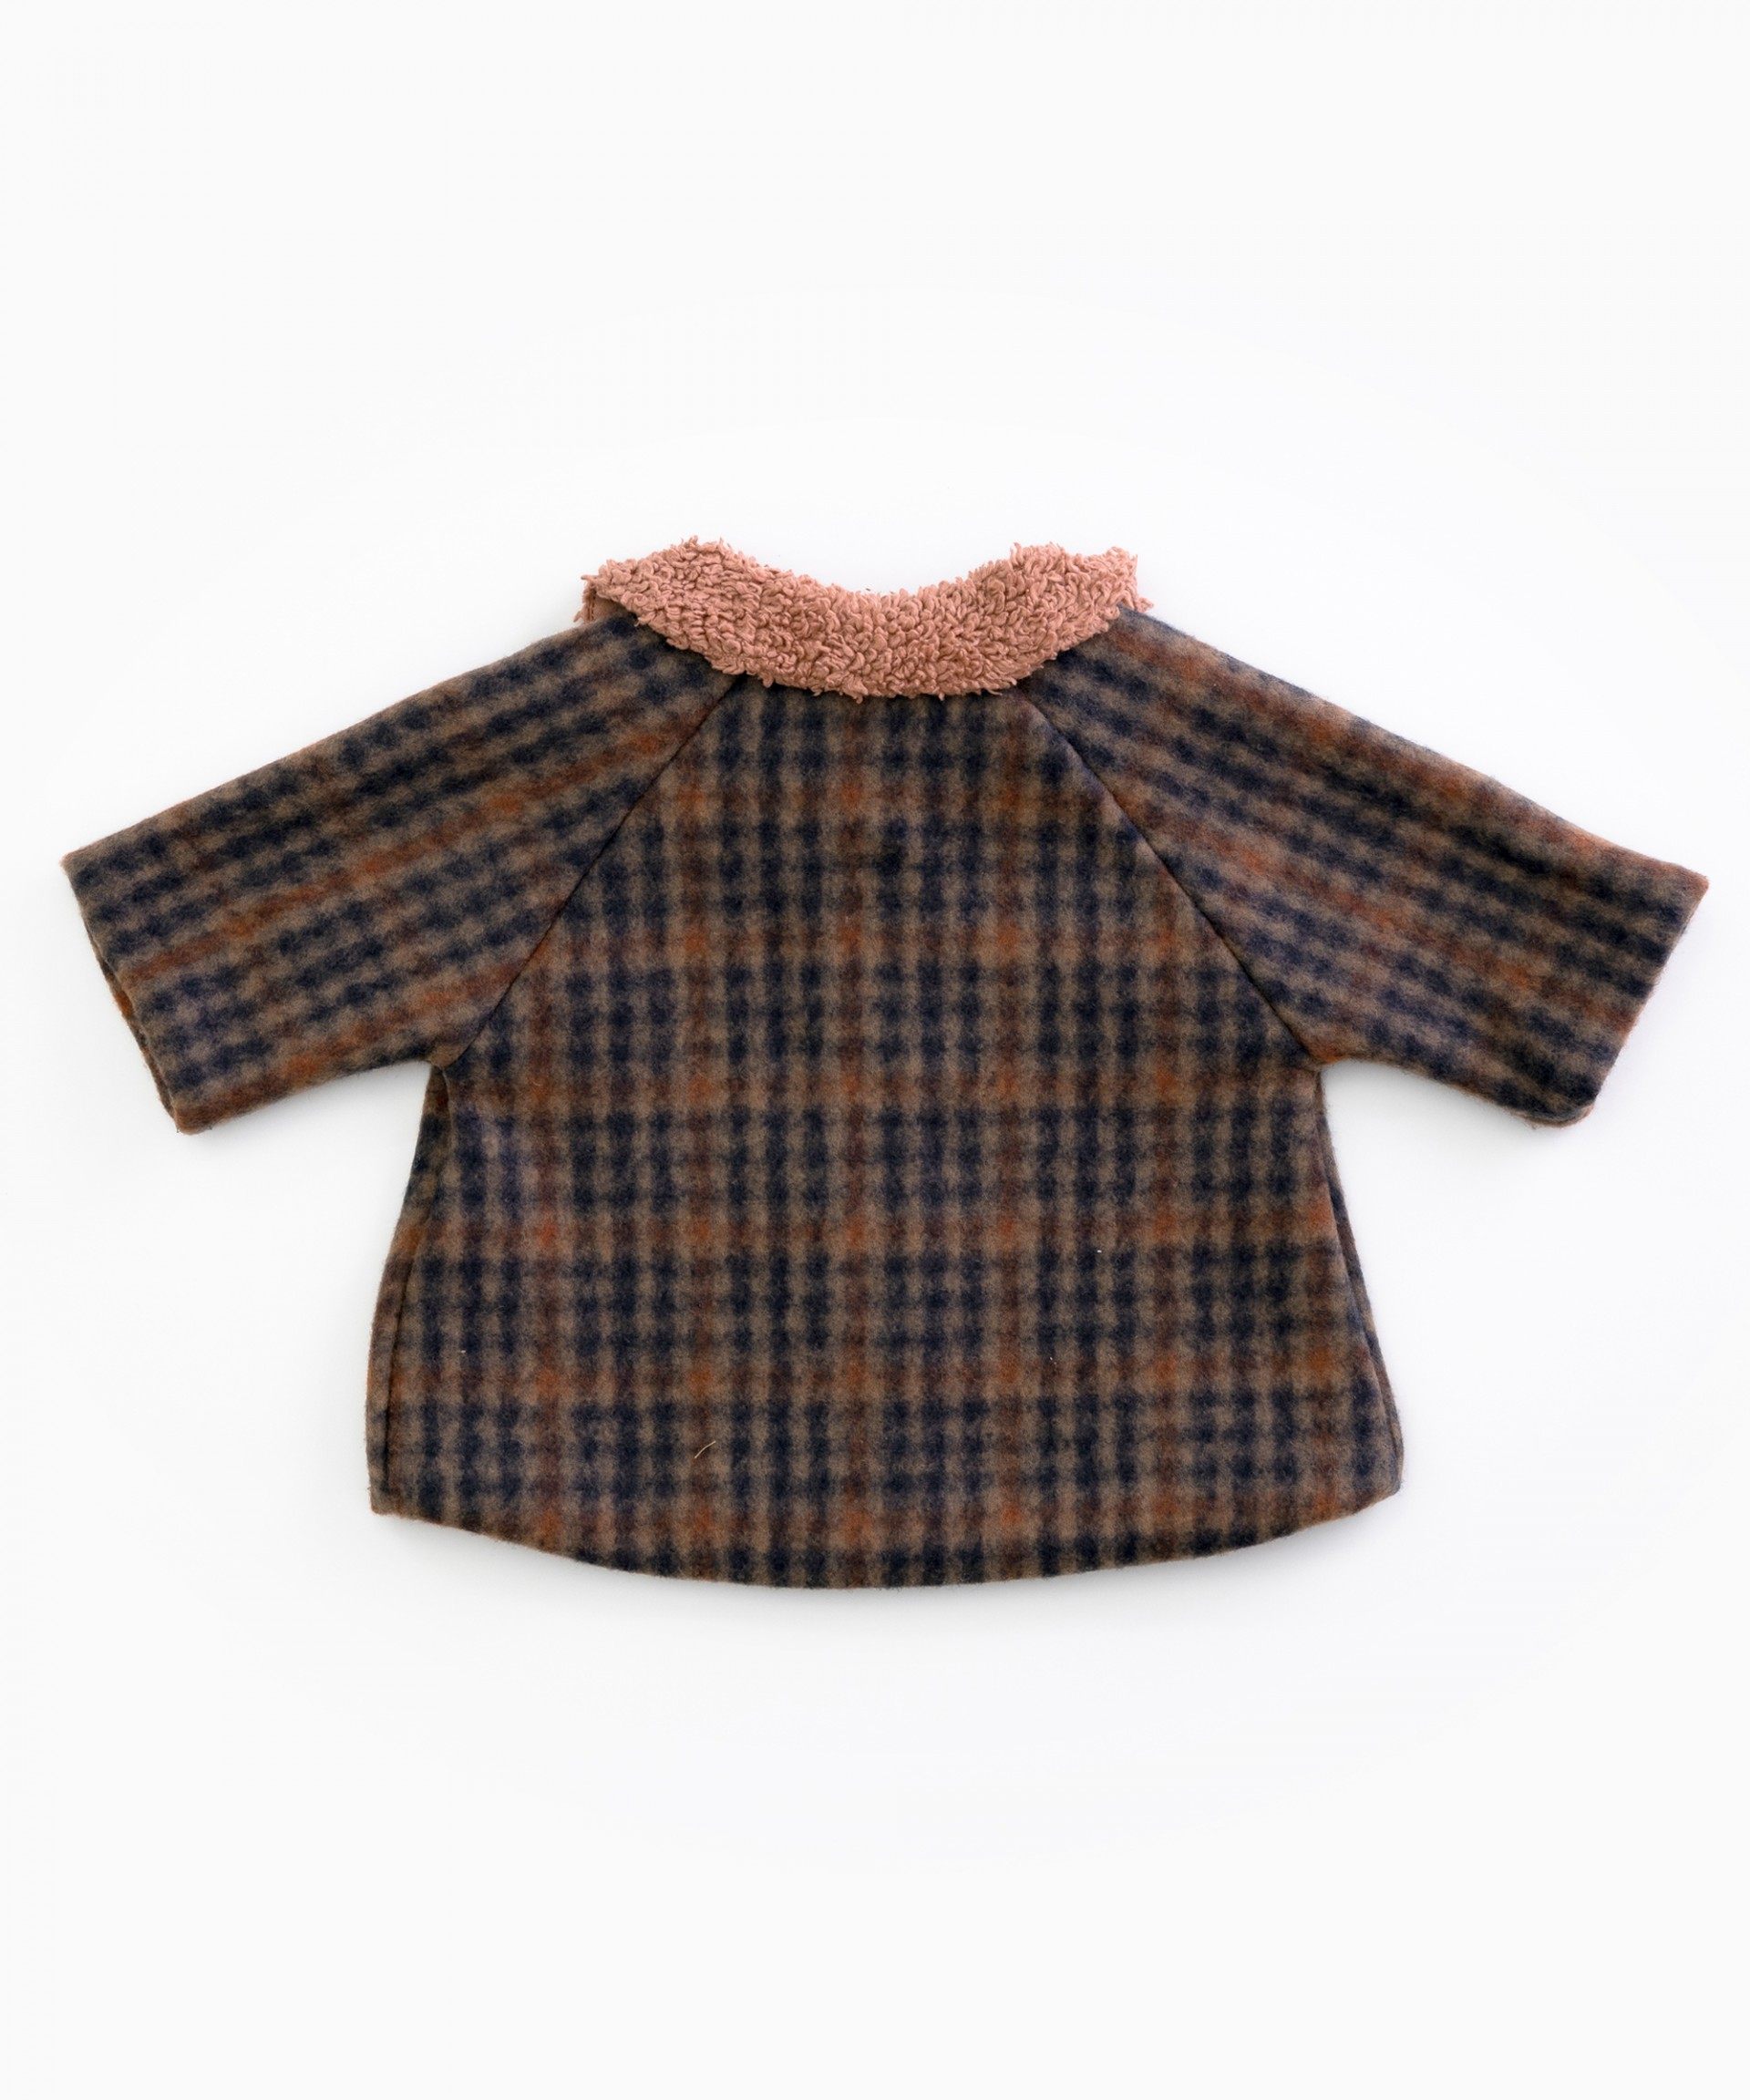 Chequered jacket with fur collar | Woodwork